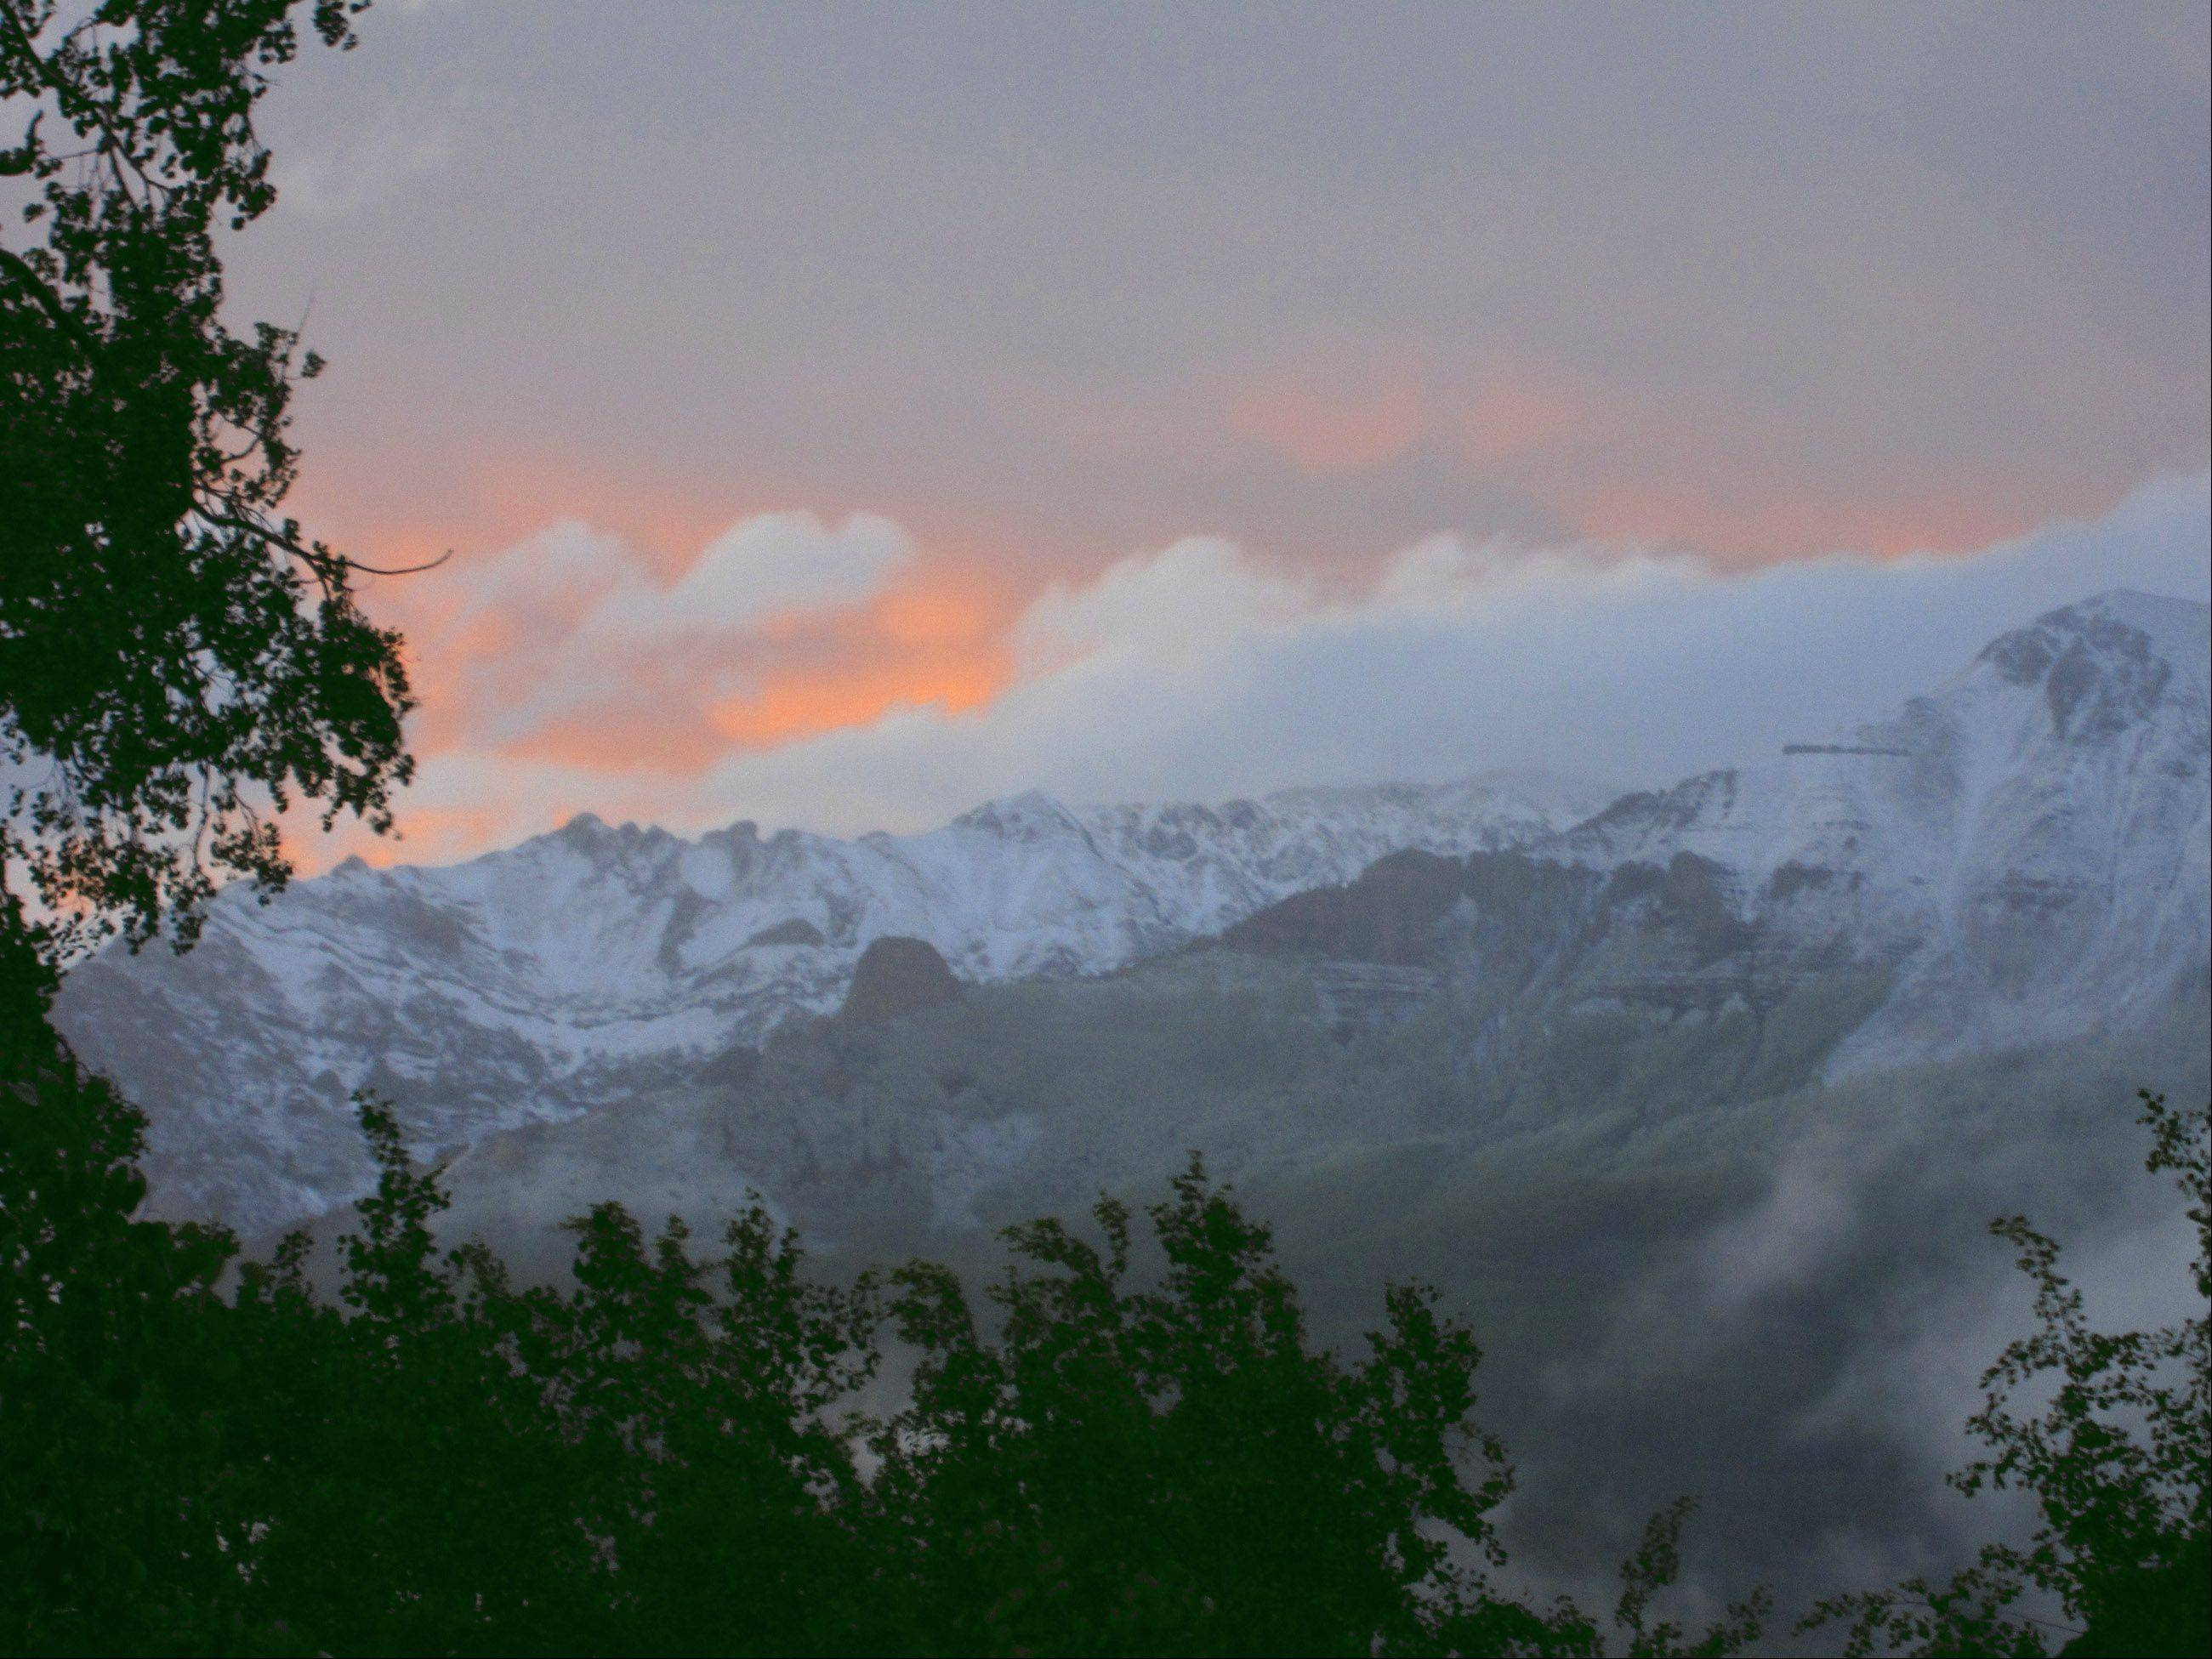 This is after a new snowfall out here in beautiful Telluride, CO with its spectacular sunsets.